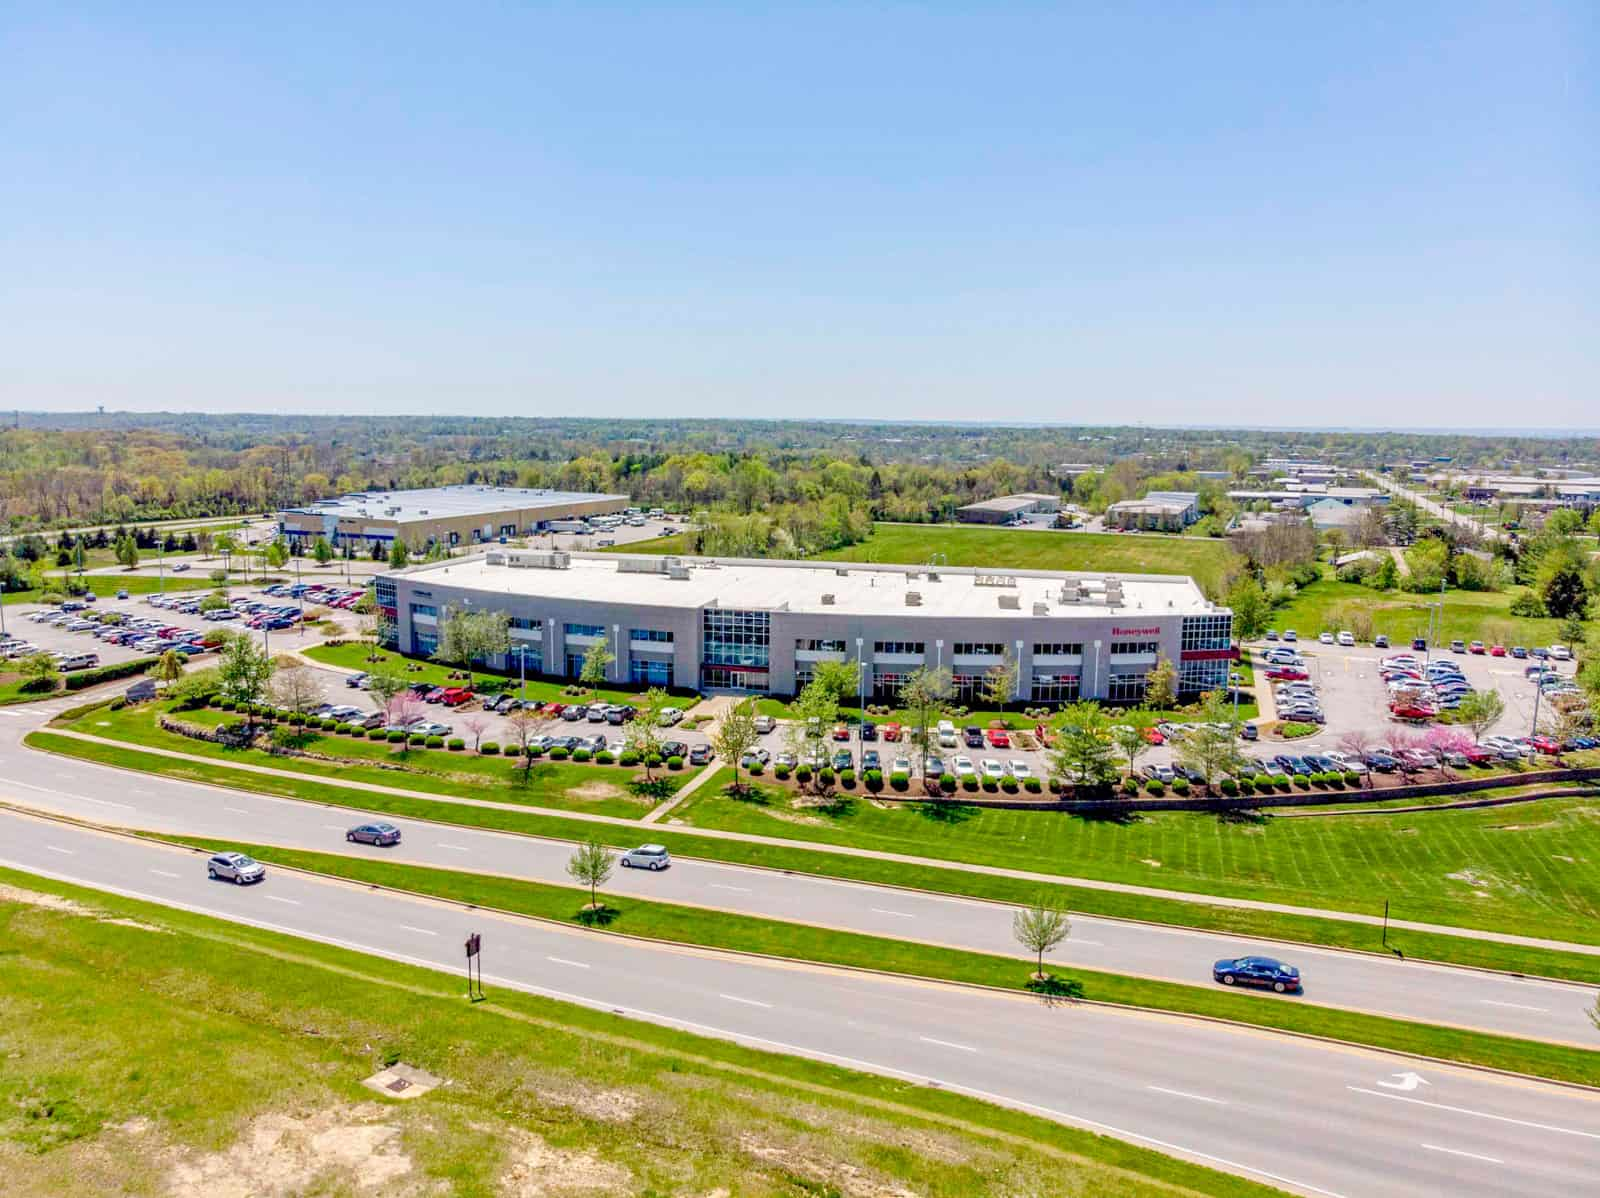 Honeywell office building drone photo in Kentucky